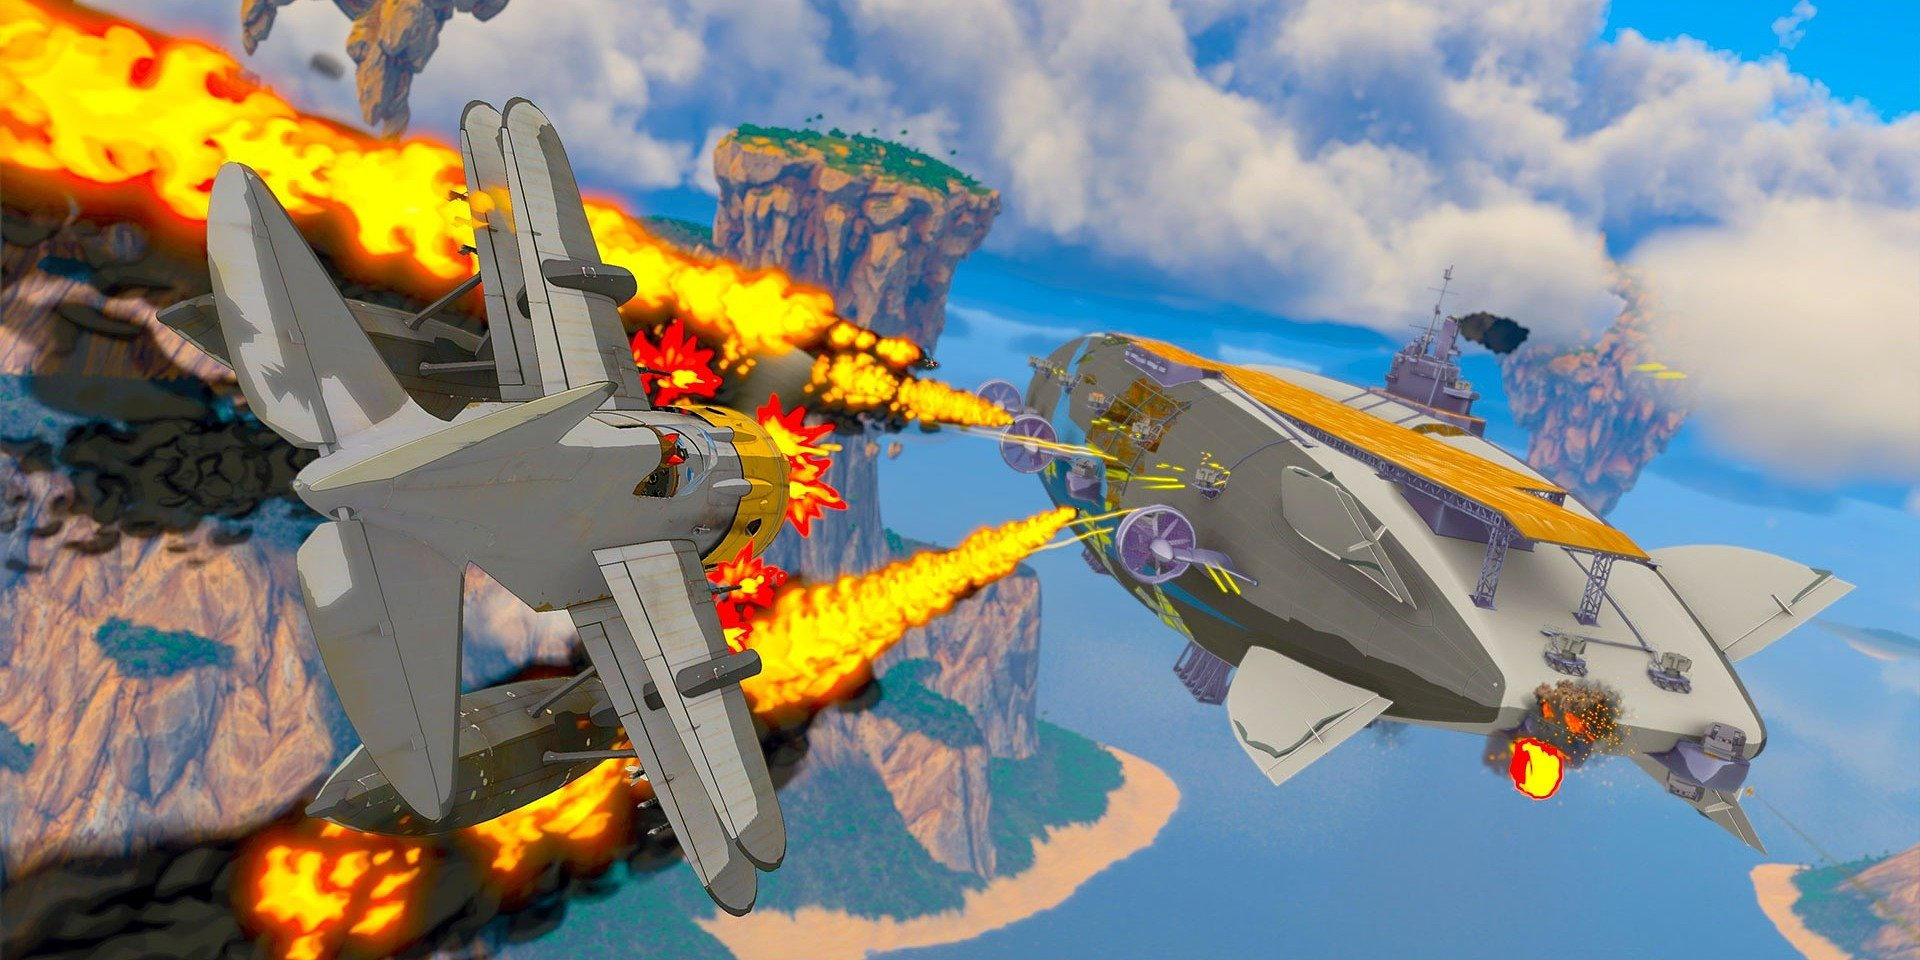 War Thunder, the military simulation game is expanding to a younger audience